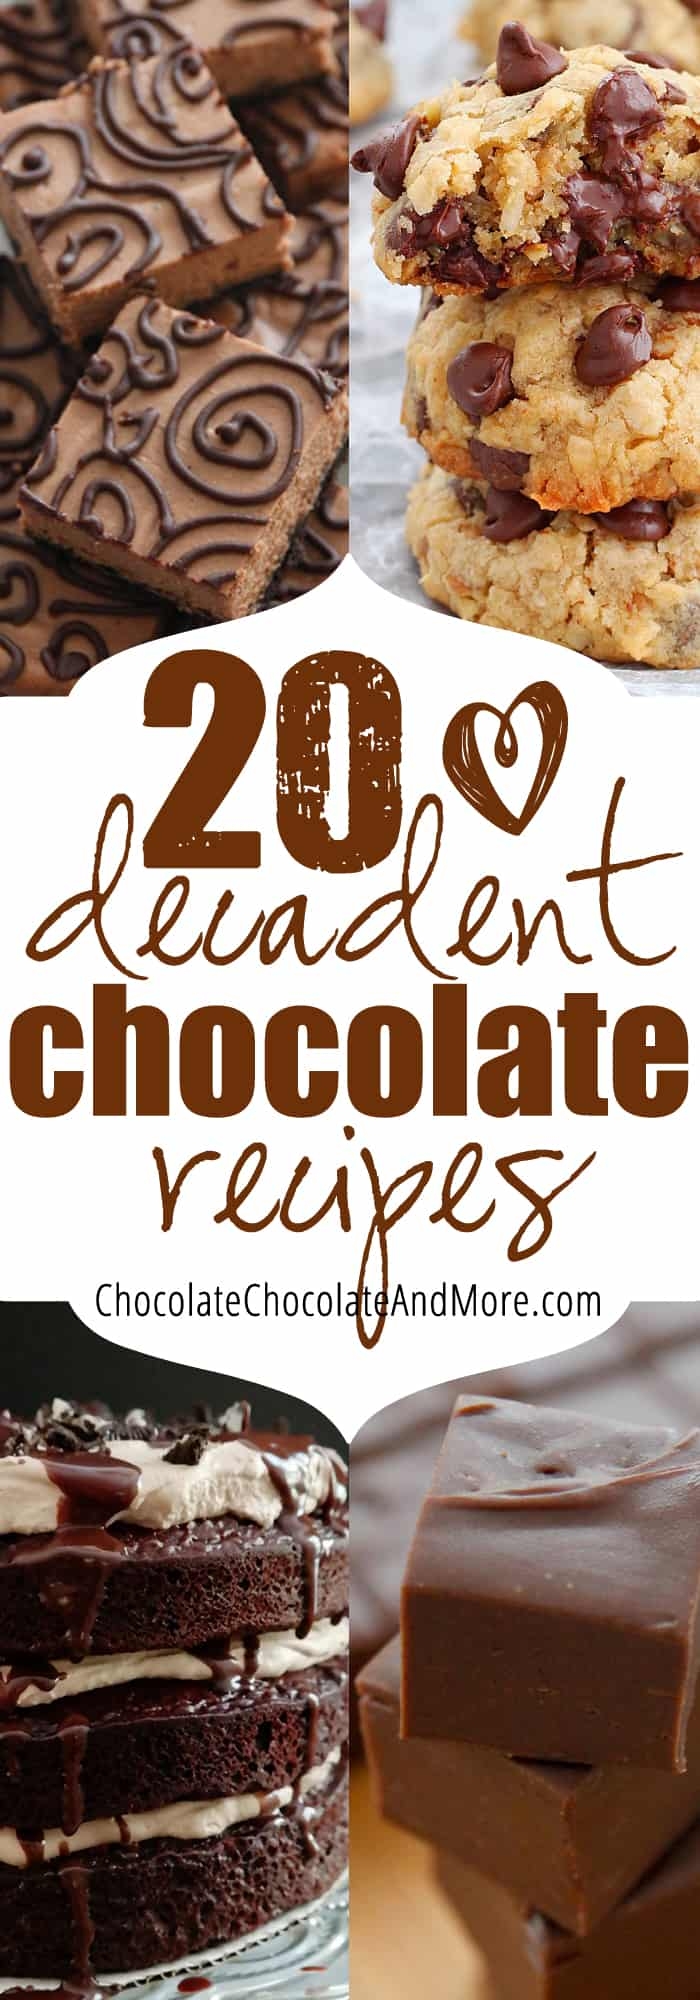 20 Decadent Chocolate Recipes by ChocolateChocolateAndMore.com